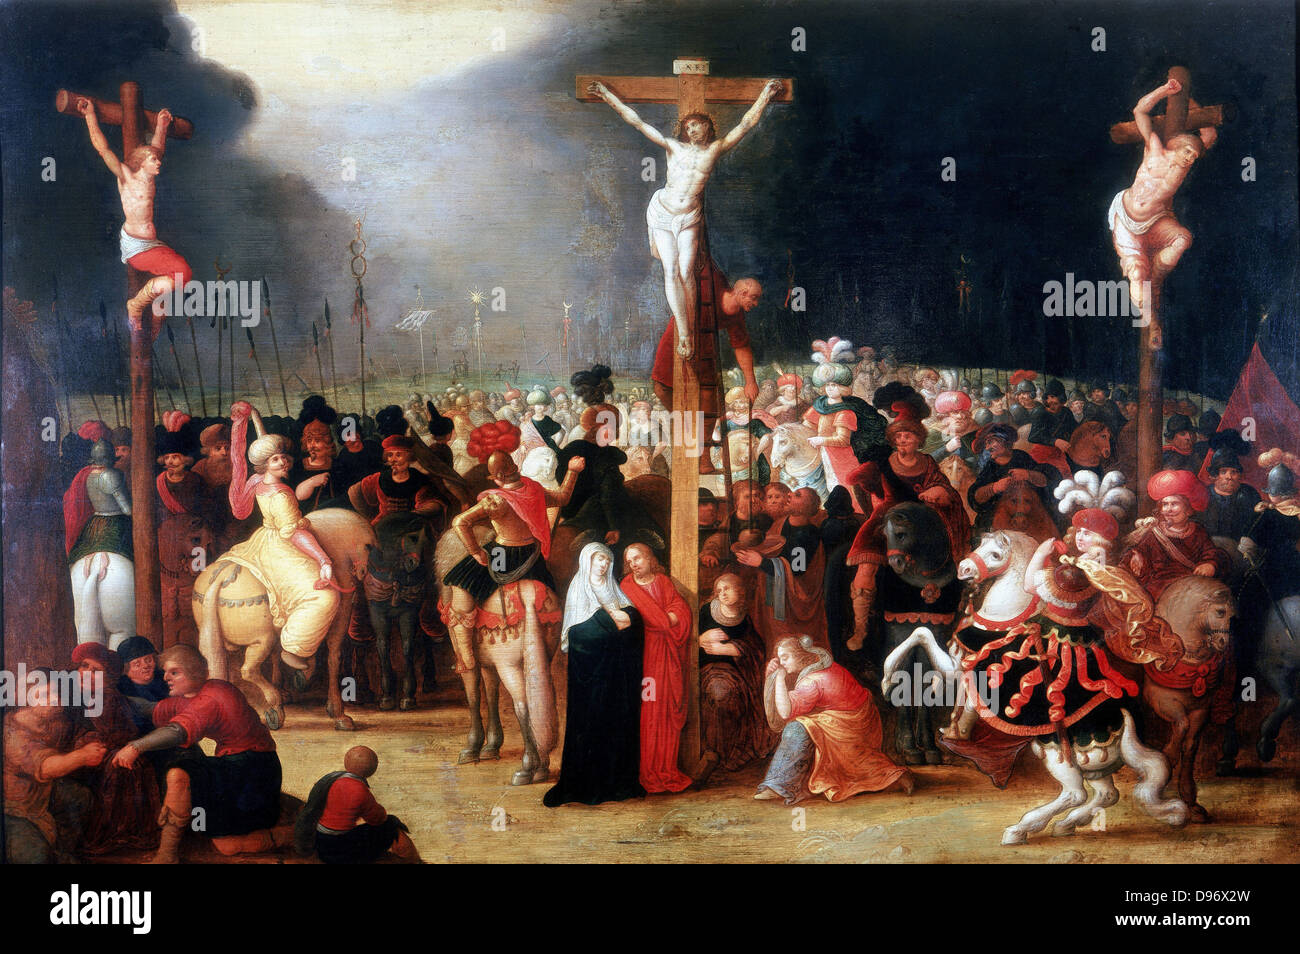 Christ on the Cross between the two Thieves', At foot of the cross the Virgin Mary with St John the Apostle, - Stock Image